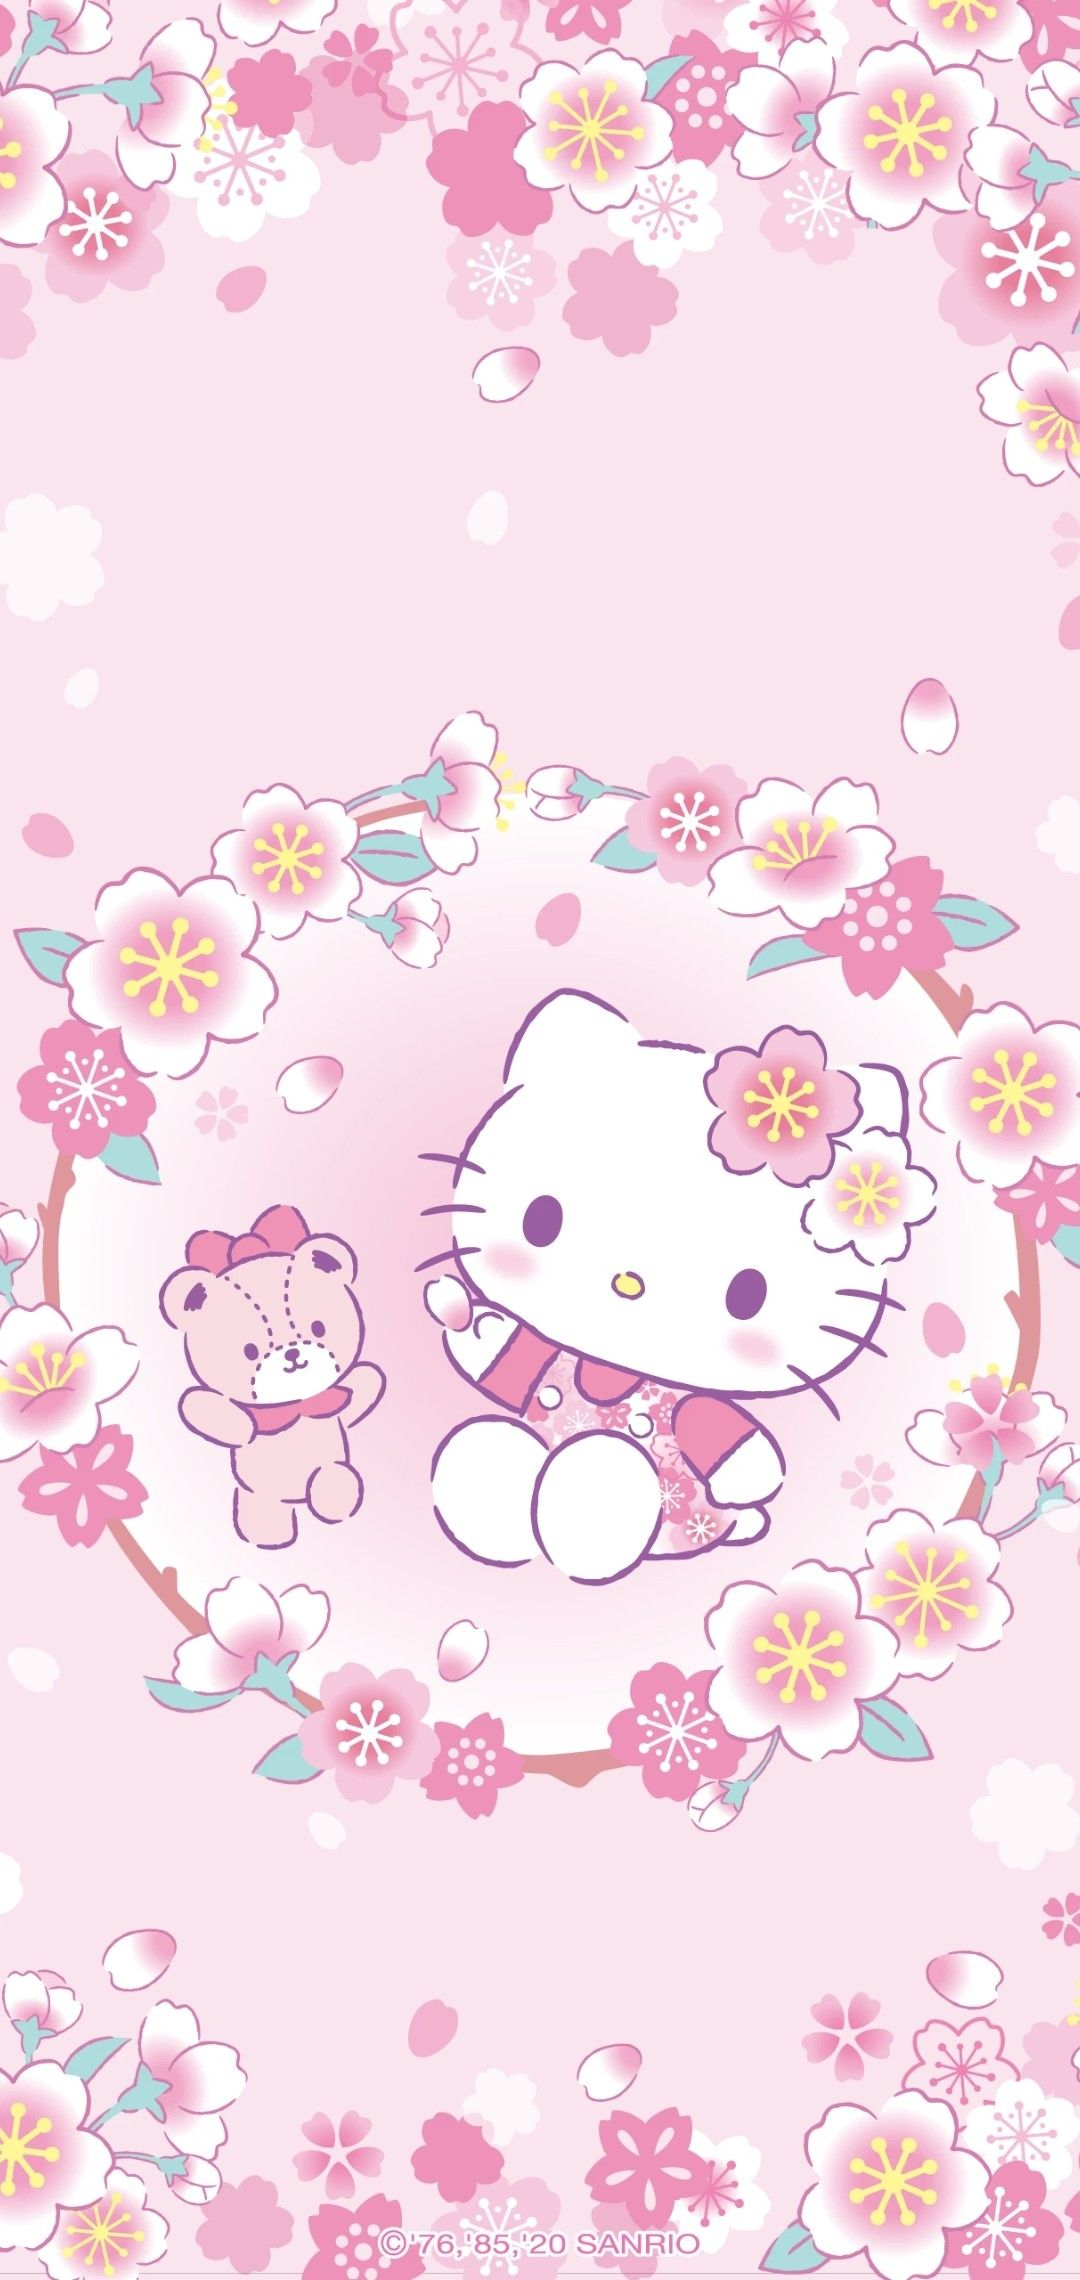 Pin By Severine Richter On Hello Kitty Hello Kitty Wallpaper Hello Kitty Pictures Hello Kitty Backgrounds